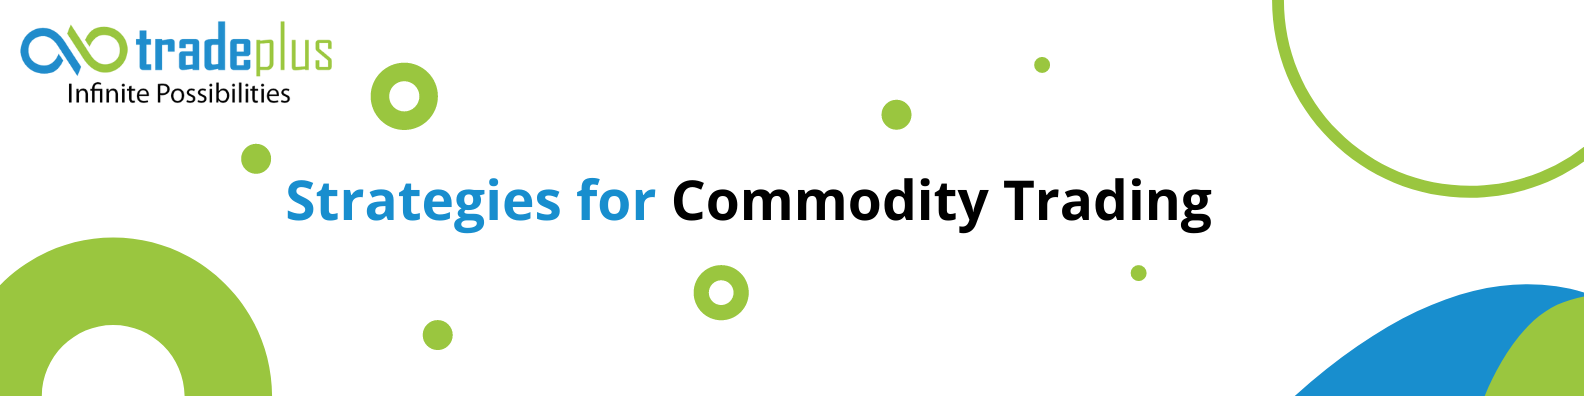 Strategies for commodity trading Successful Strategies for Commodity Trading